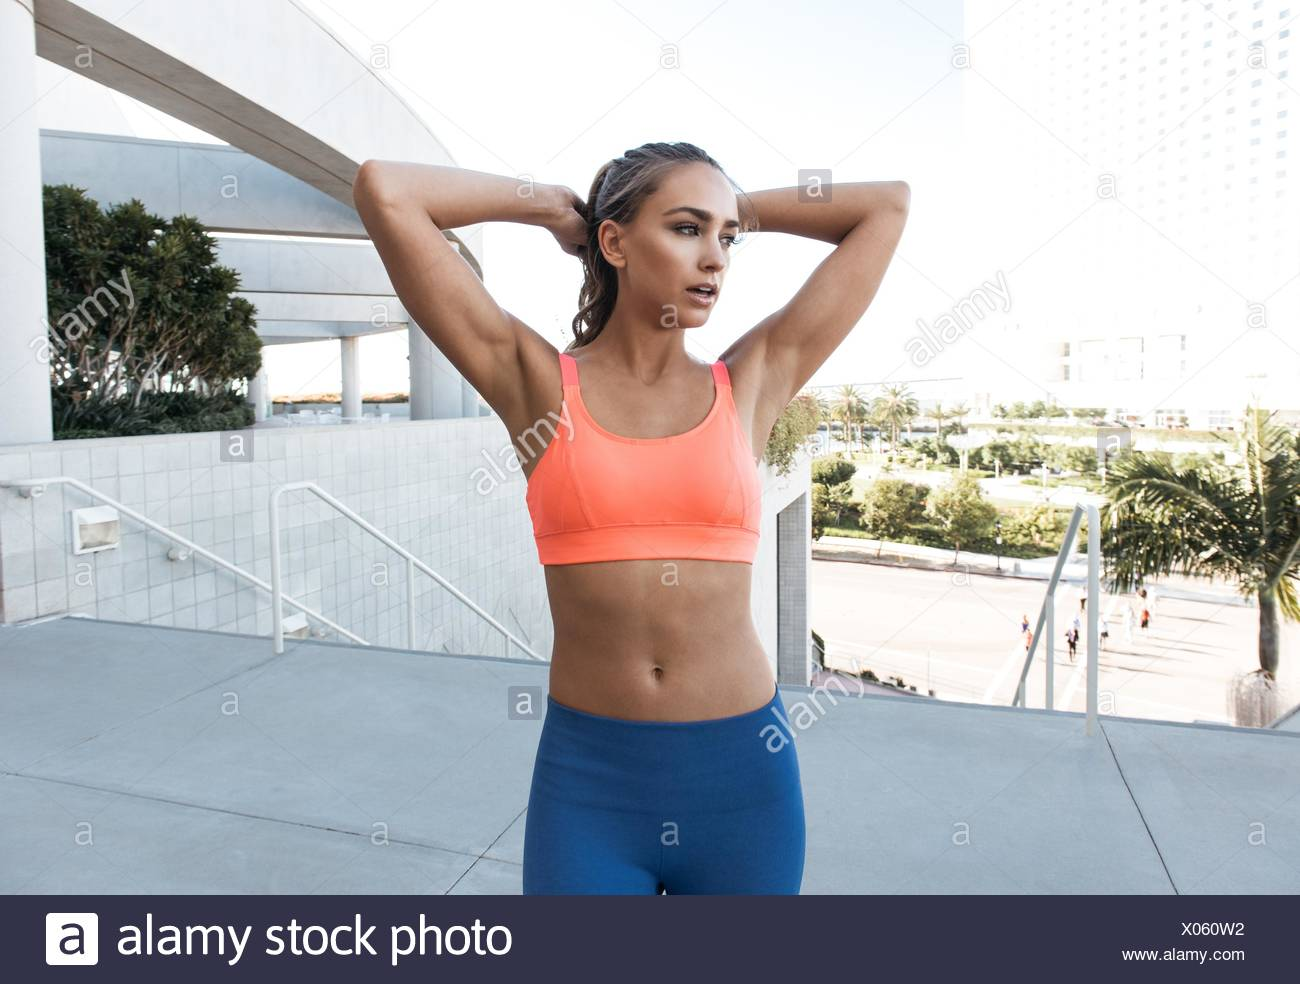 Young woman wearing sports bra, hands behind head, looking away - Stock Image